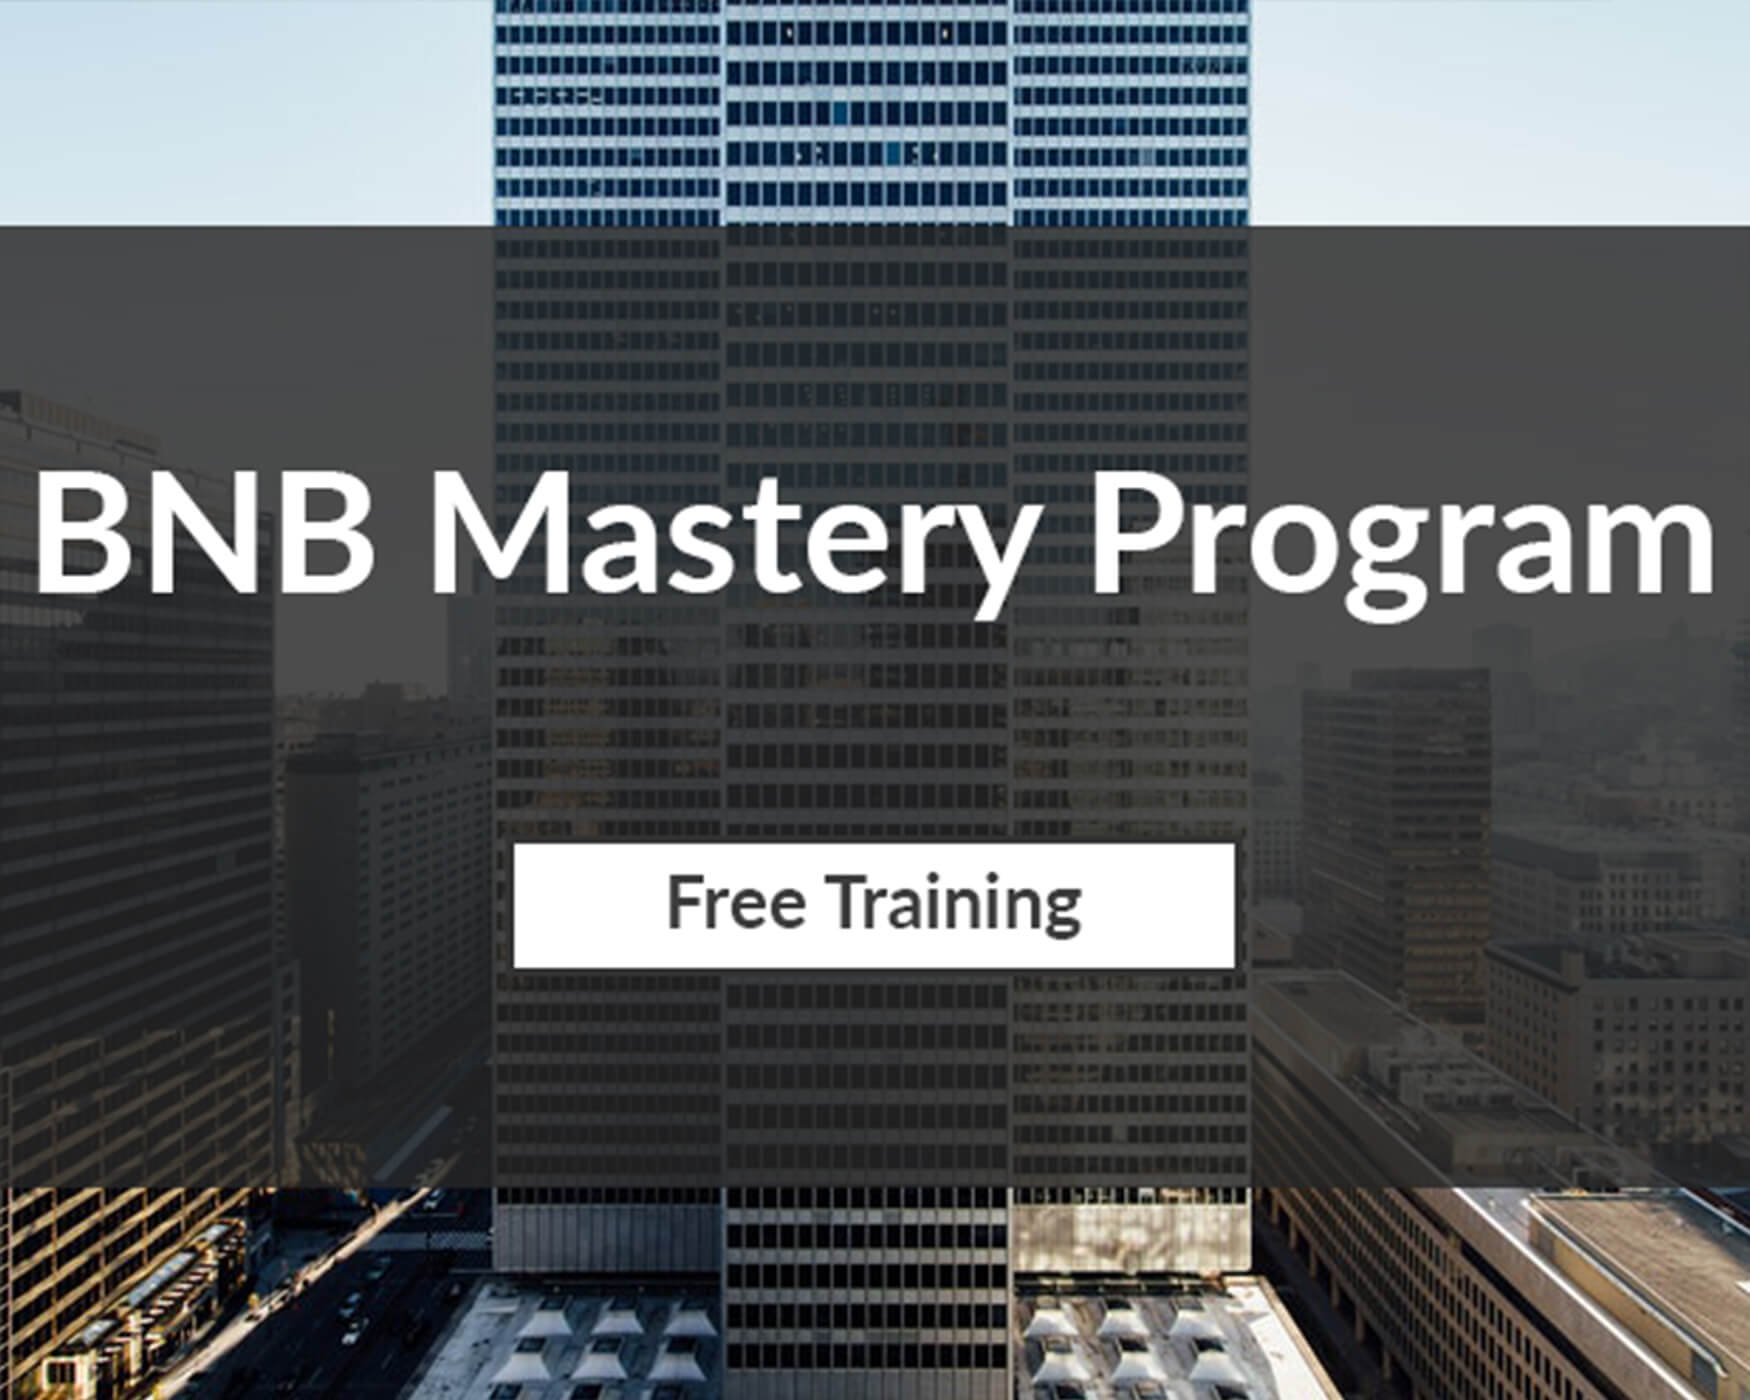 BNB Mastery Program tips